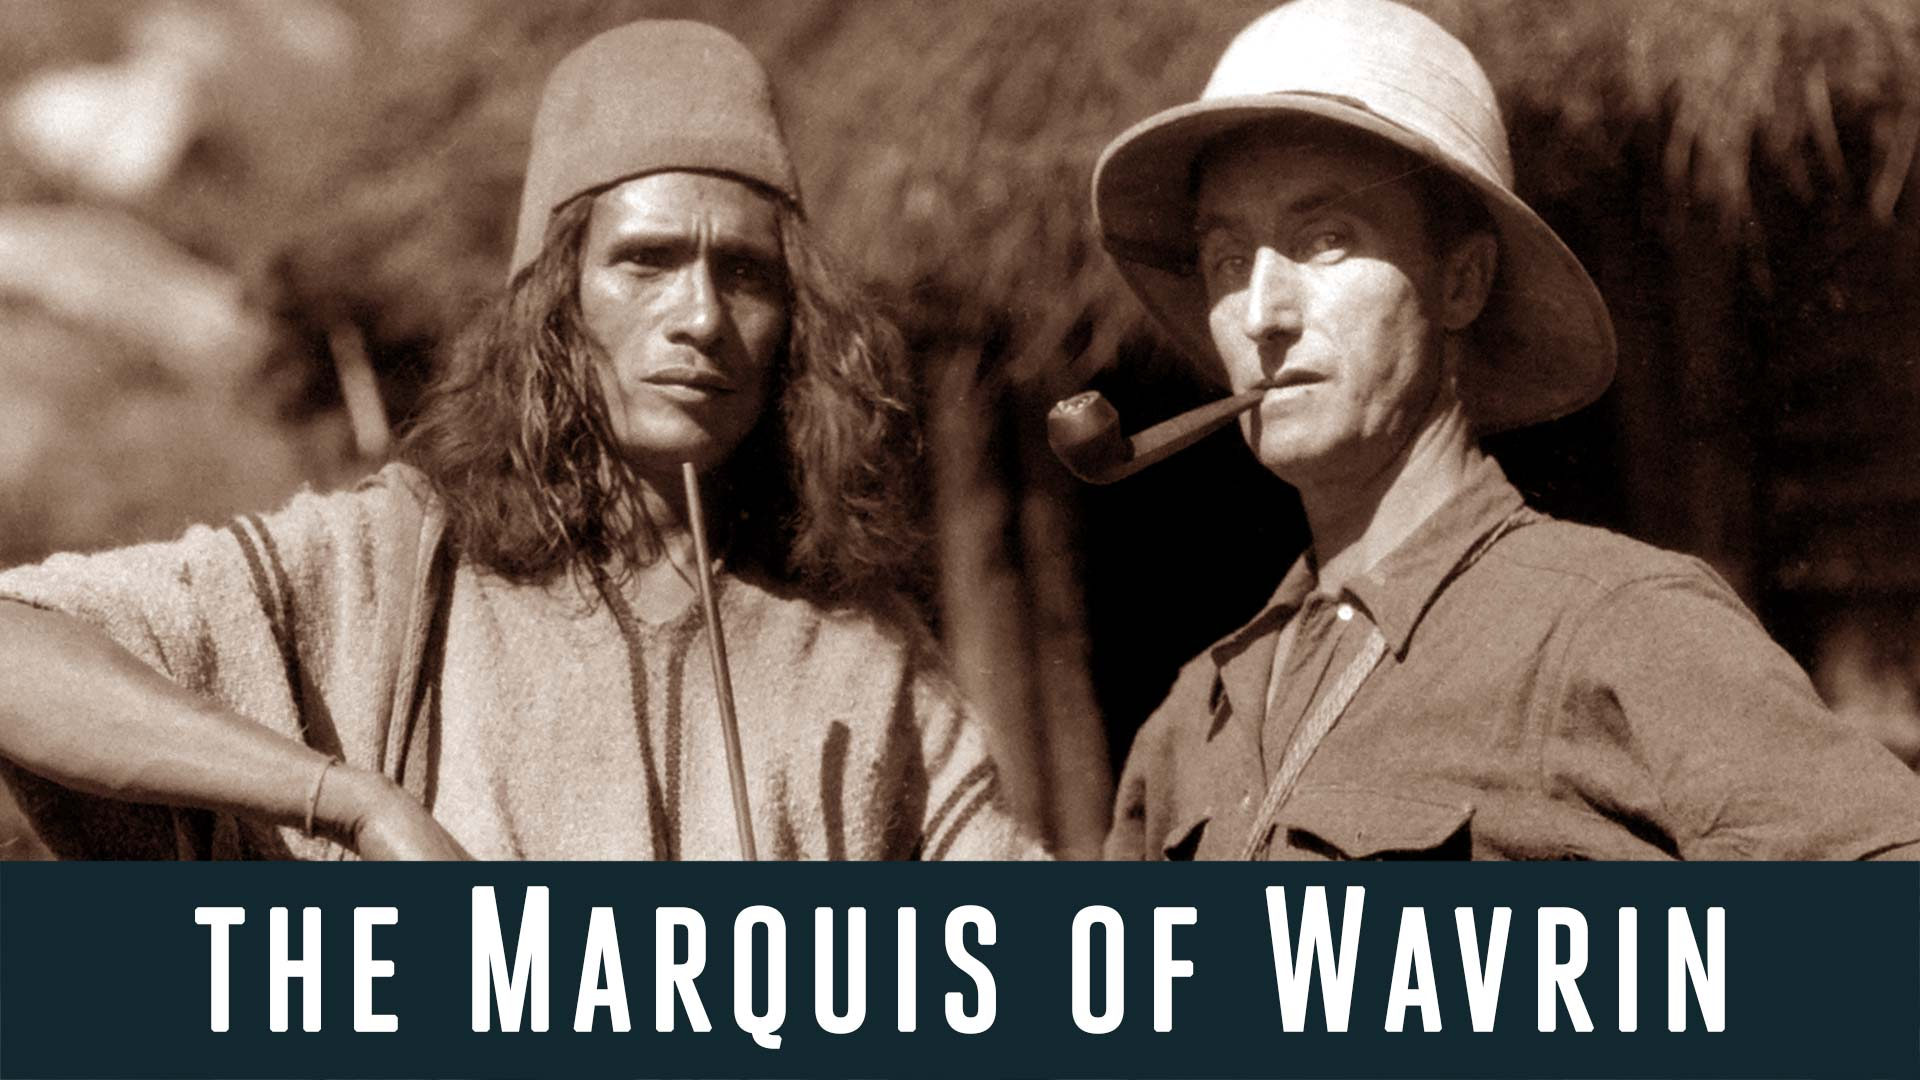 The Marquis of Wavrin - image